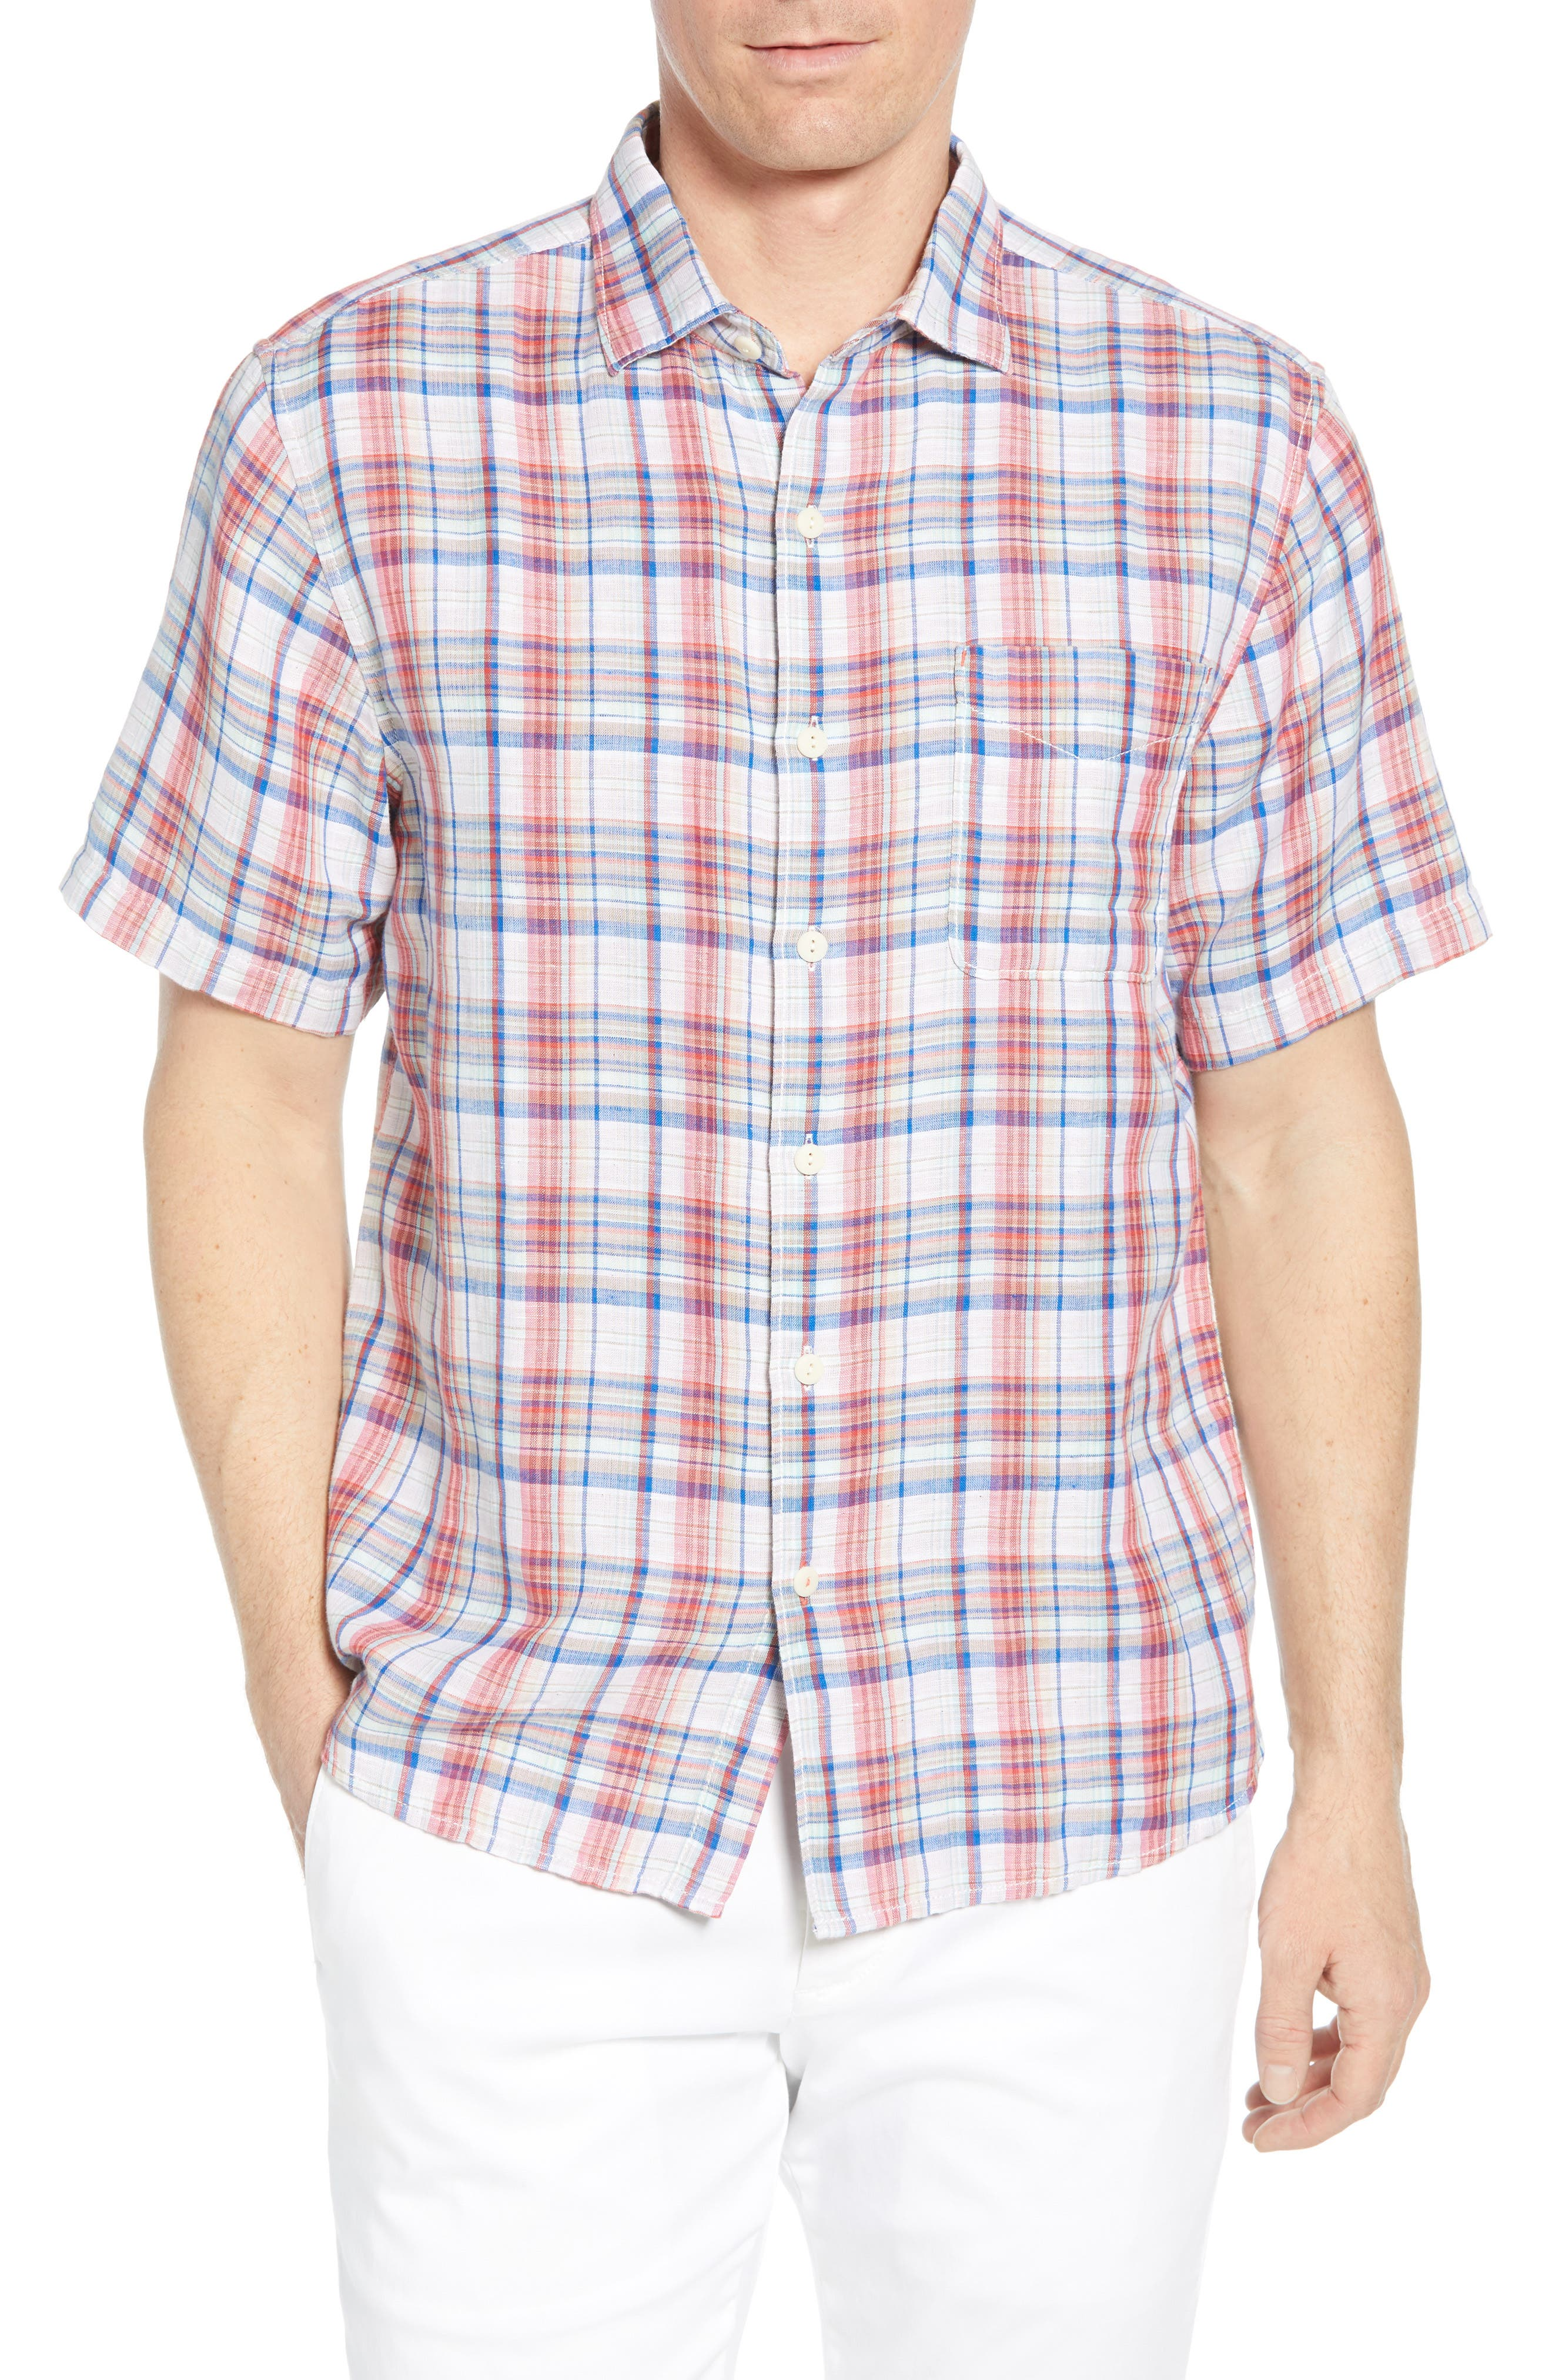 Tommy Bahama The Switch Up Classic Fit Plaid Short Sleeve Linen Blend Button-Up Sport Shirt, Orange